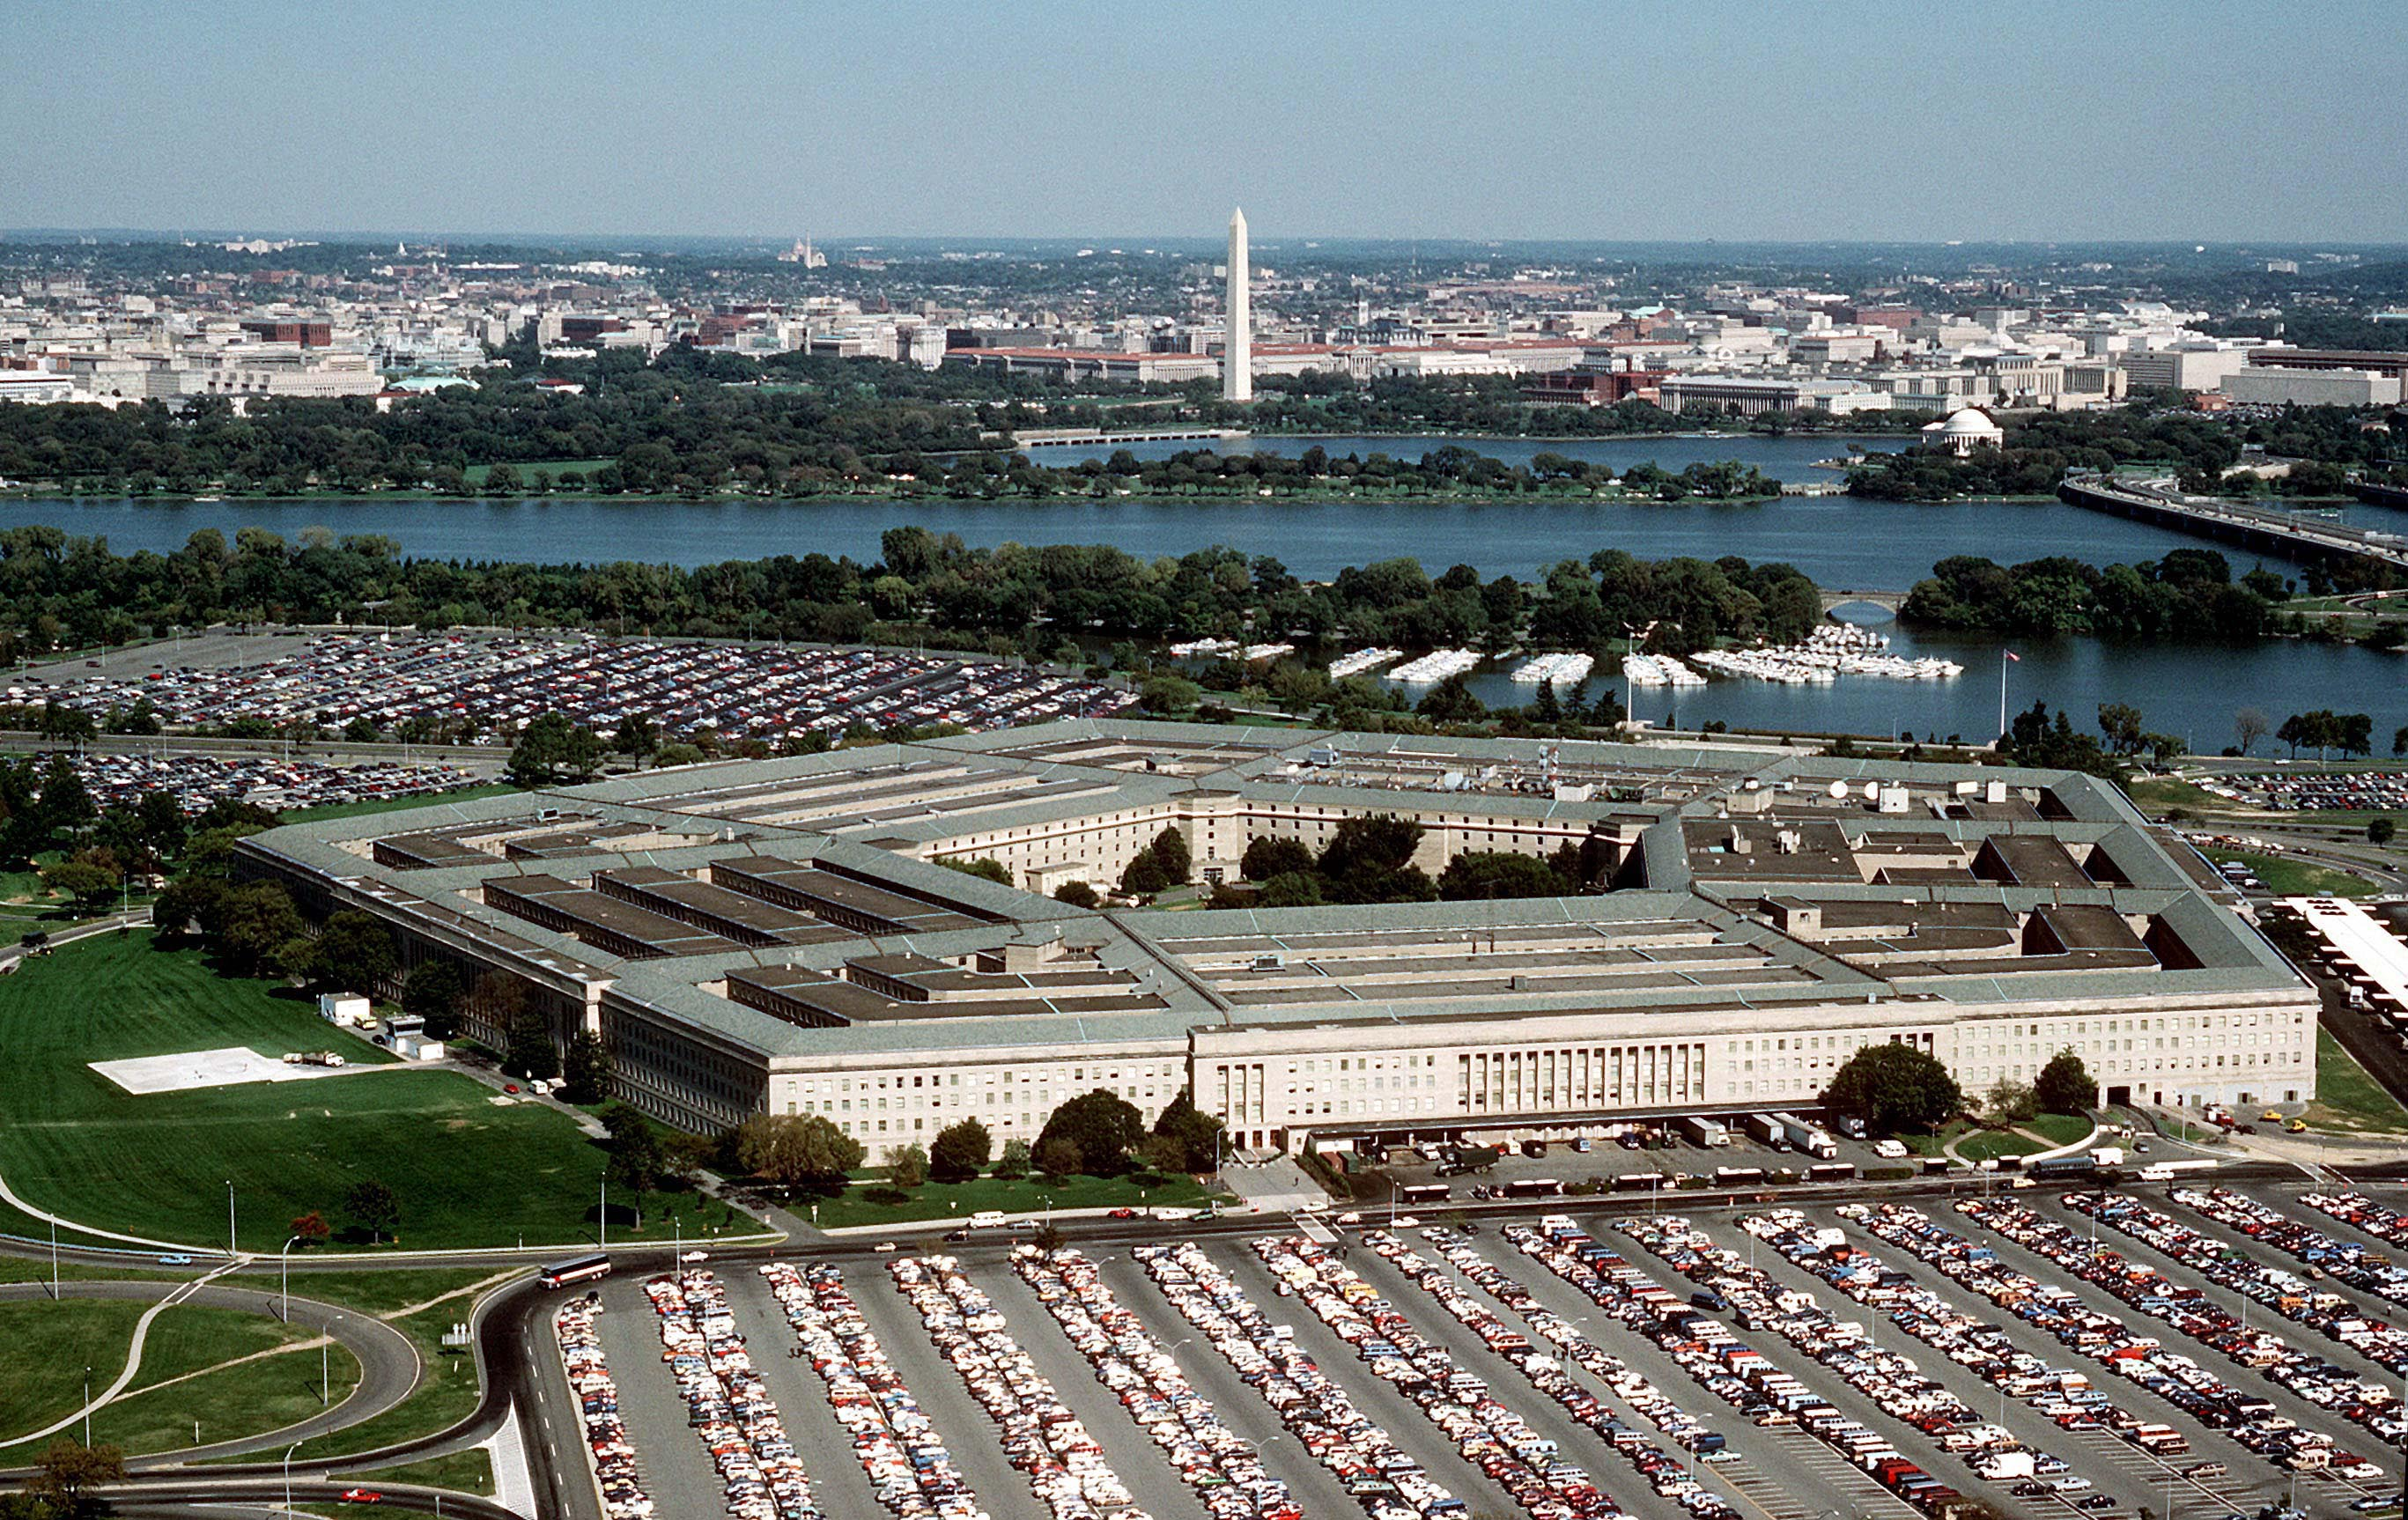 The Pentagon, headquarters of the Department of Defense.